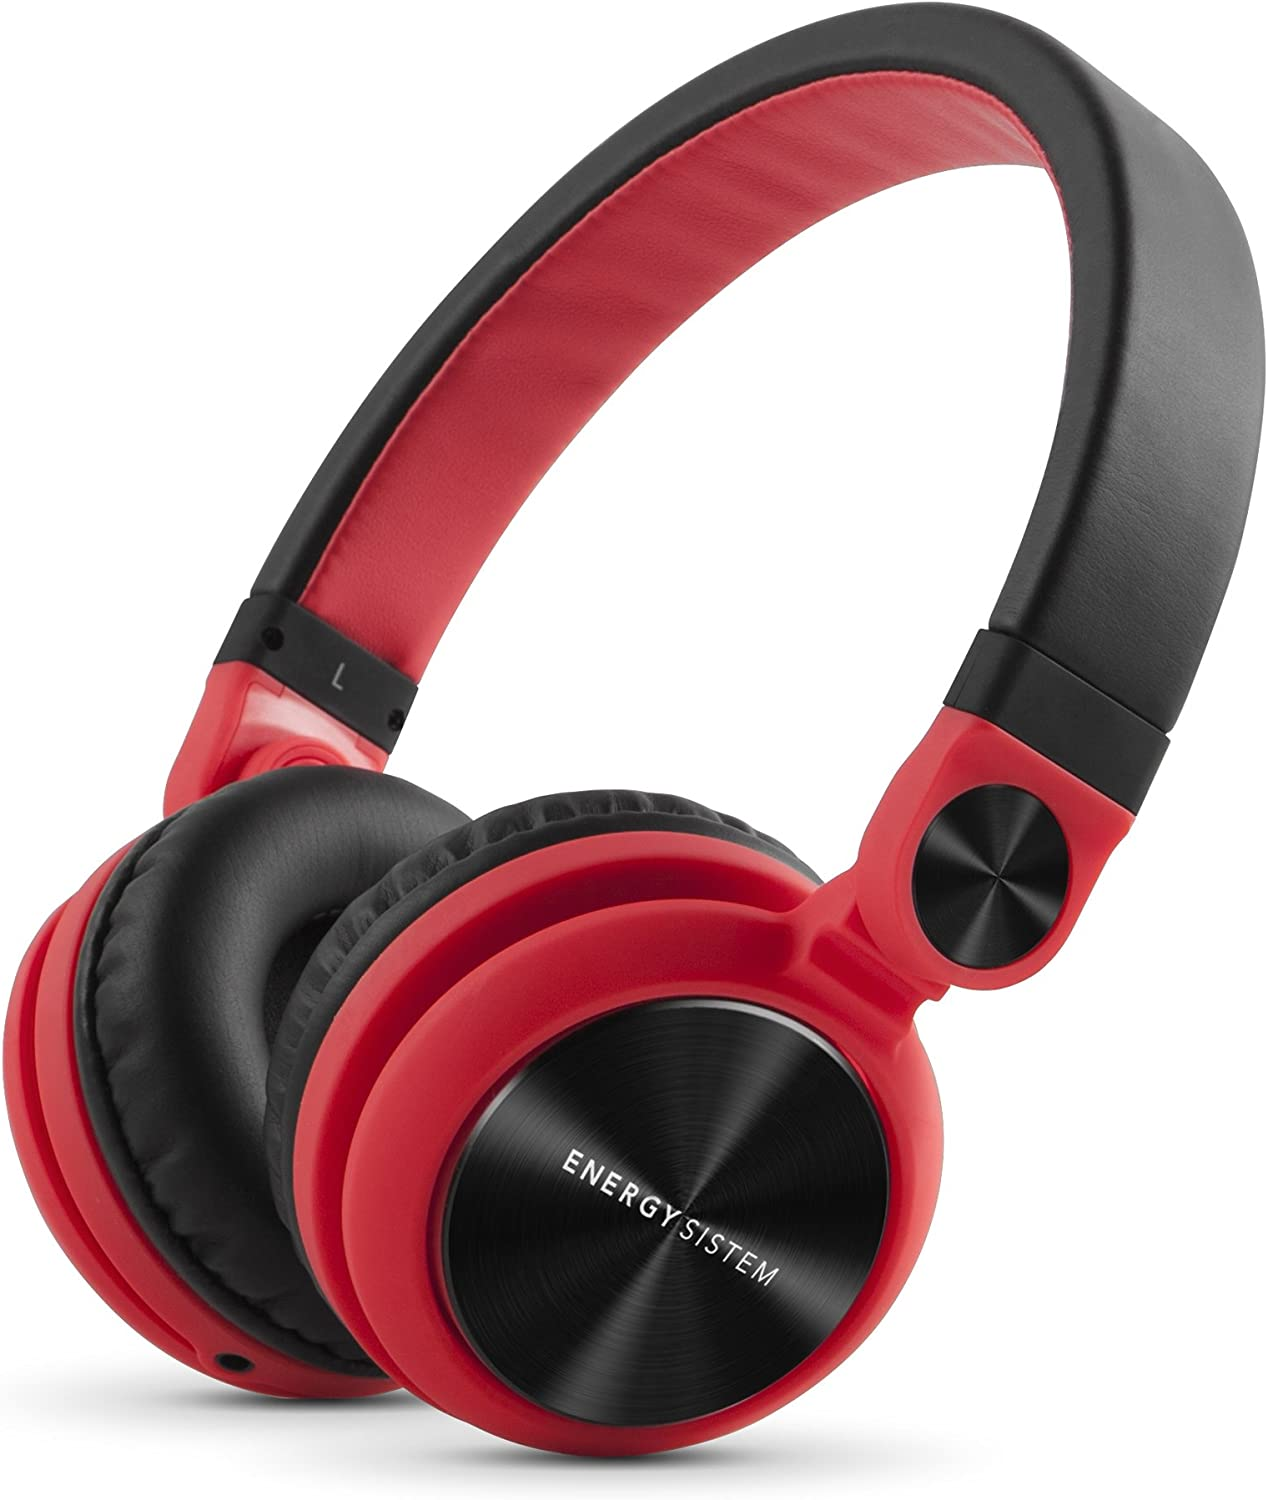 Energy Headphones DJ2 Red (Flip-Up Ear Cups, Detachable Cable, Foldable)